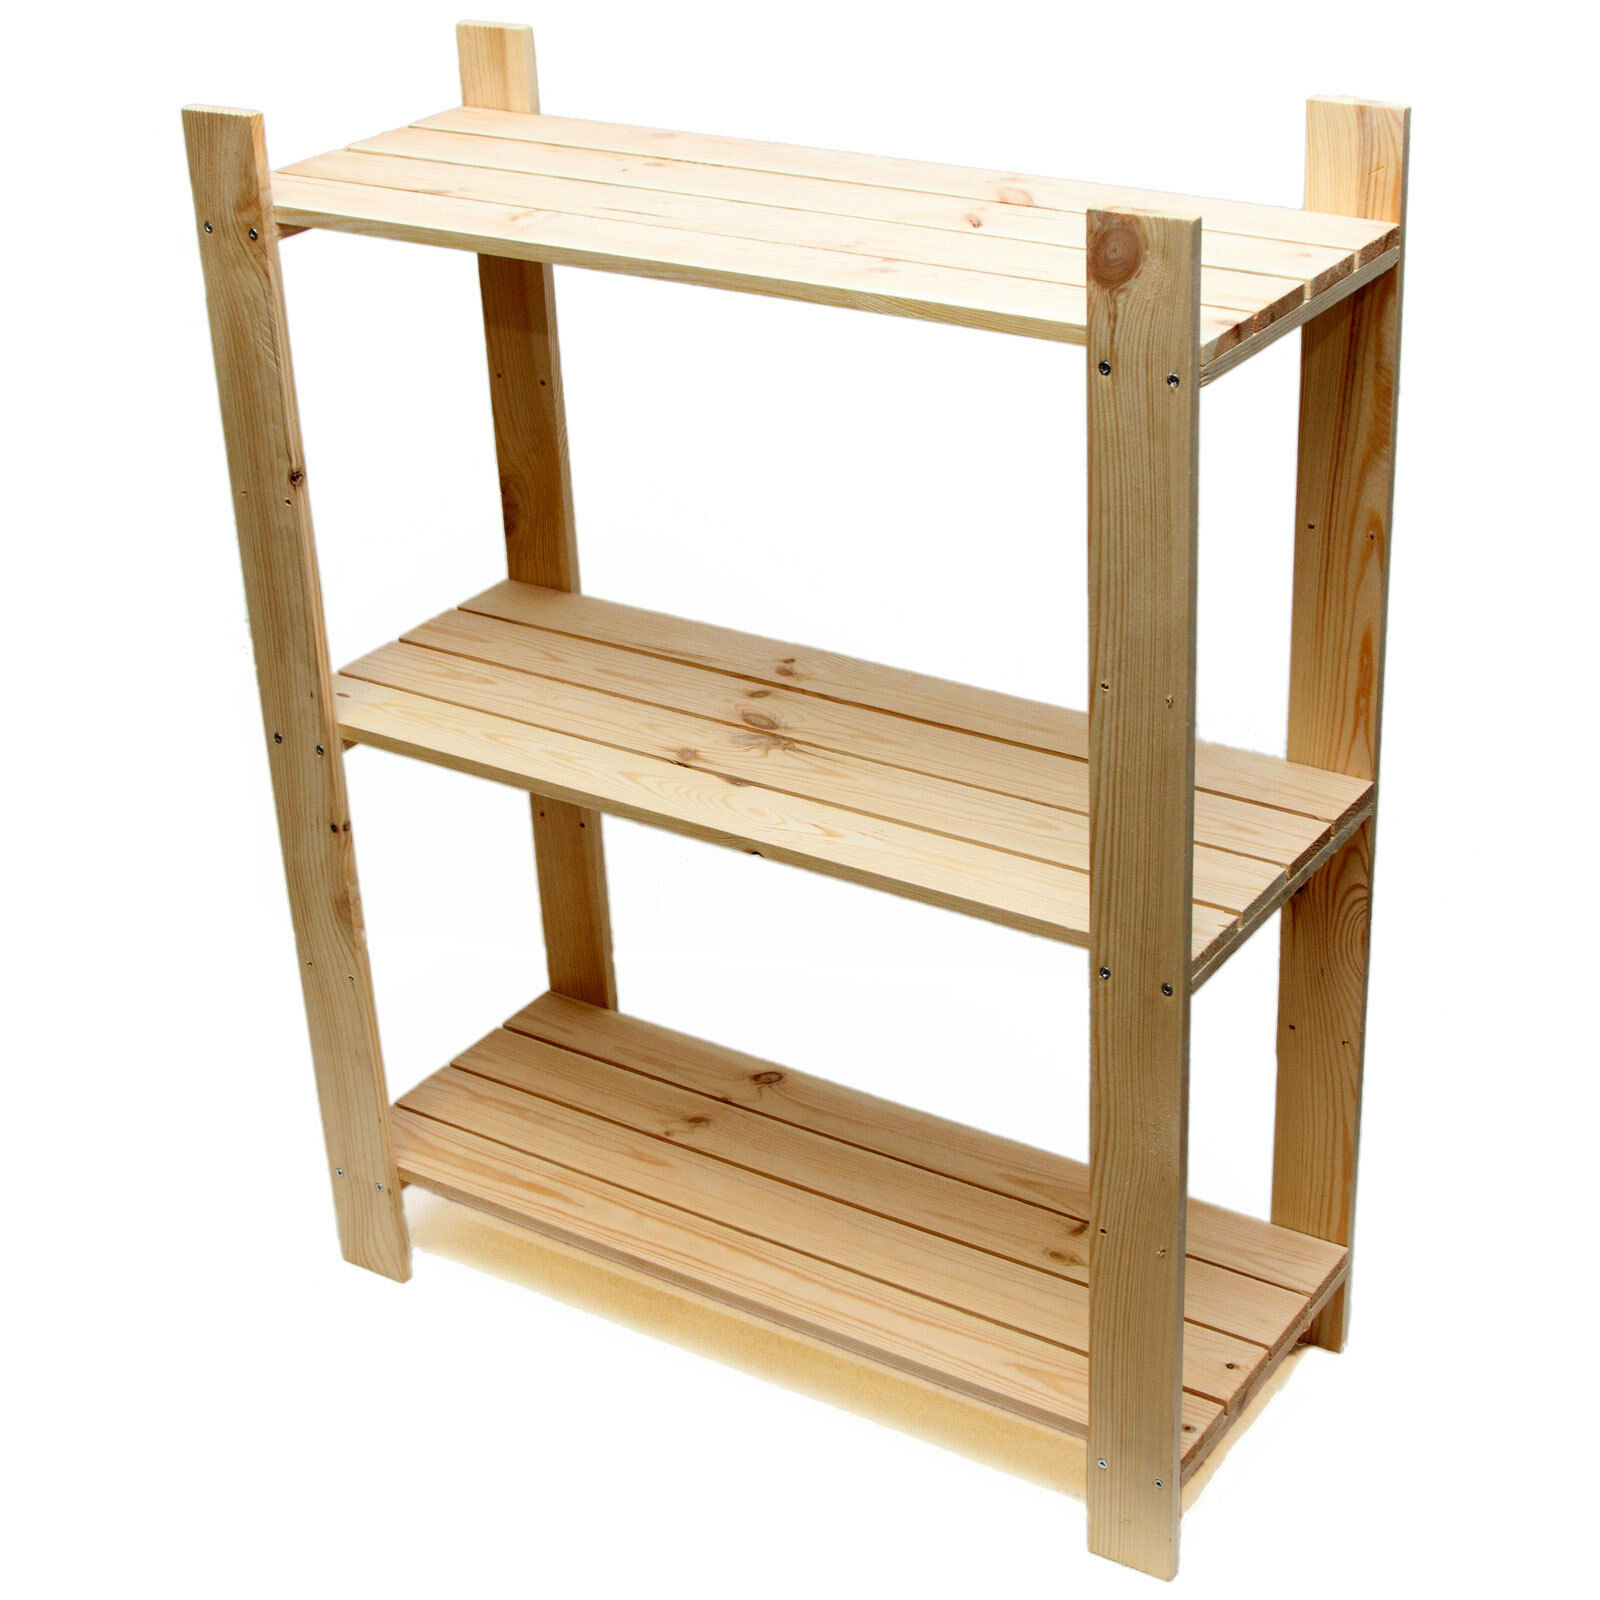 Shelf Unit - Pine Shelves with 3 Wooden Shelves - Freestanding Rack